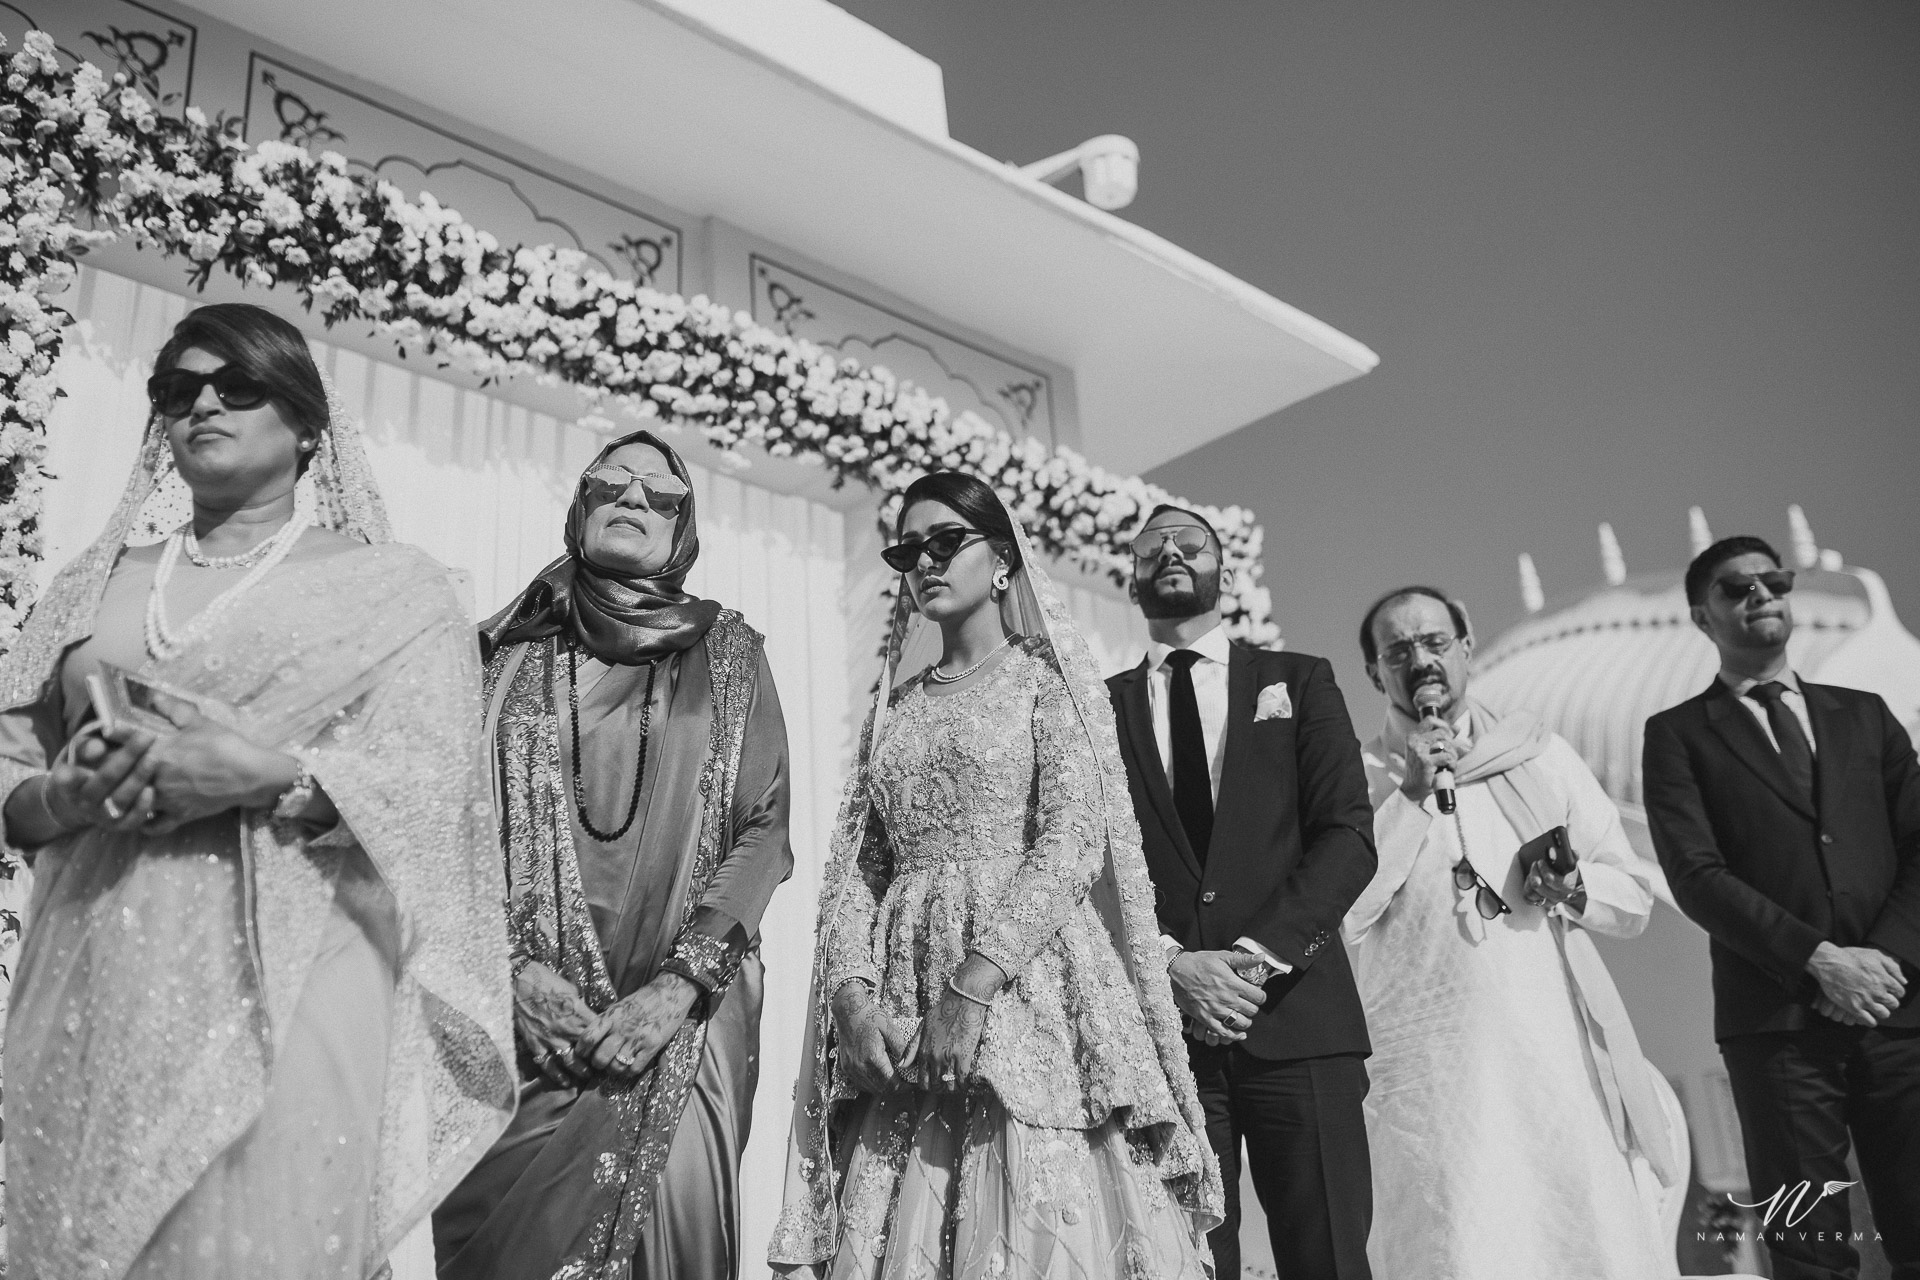 02_NVP_ZAYNABMIKHAIL_WEDDING-3815.jpg